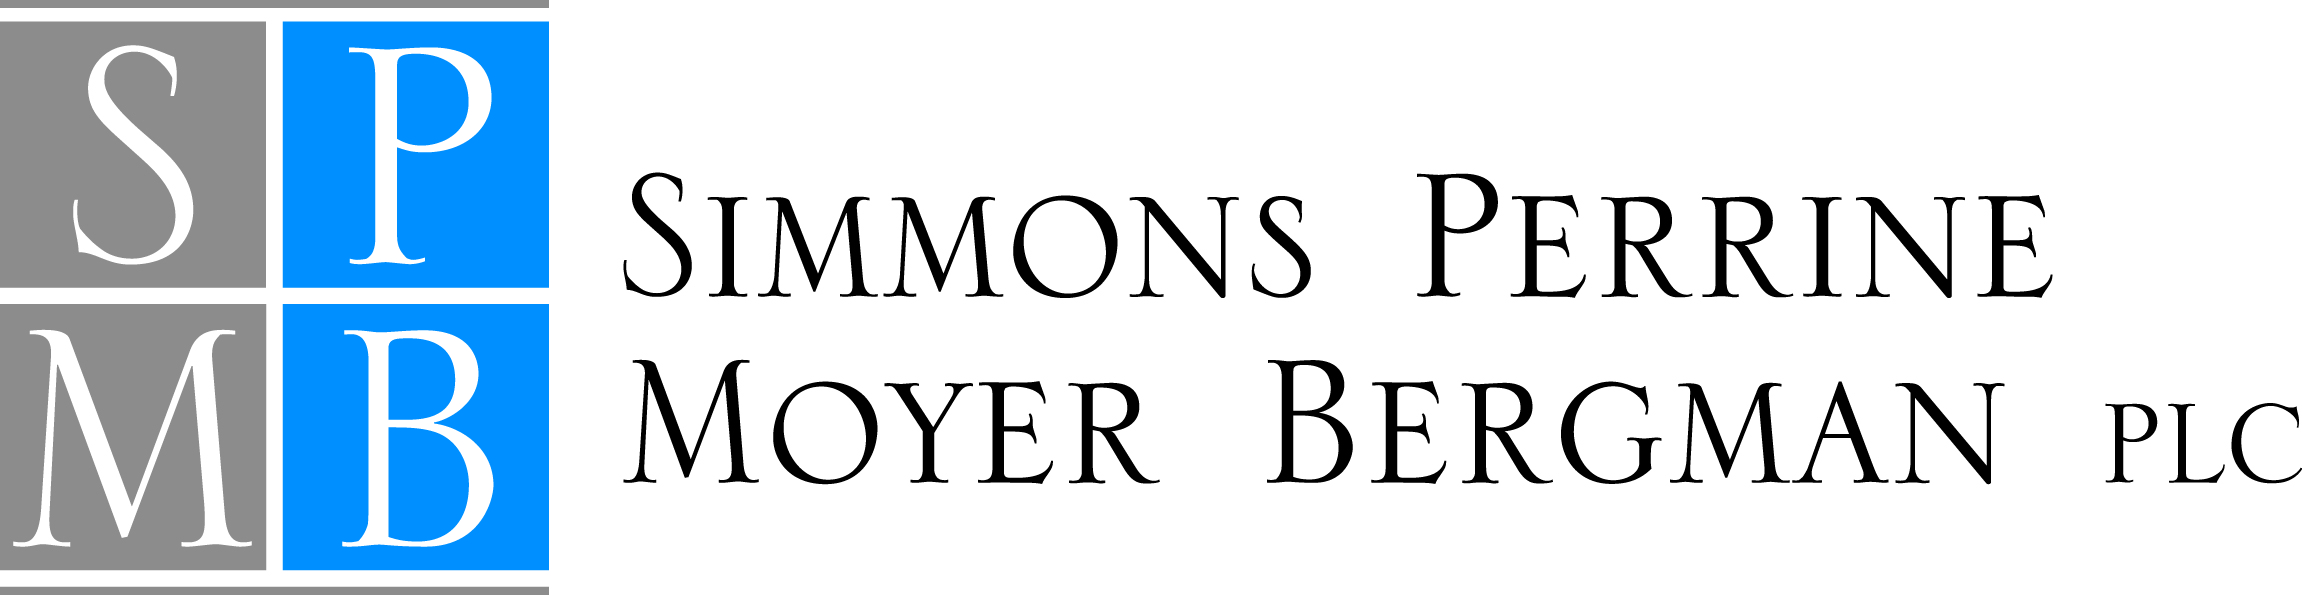 Simmons Perrine Moyer 